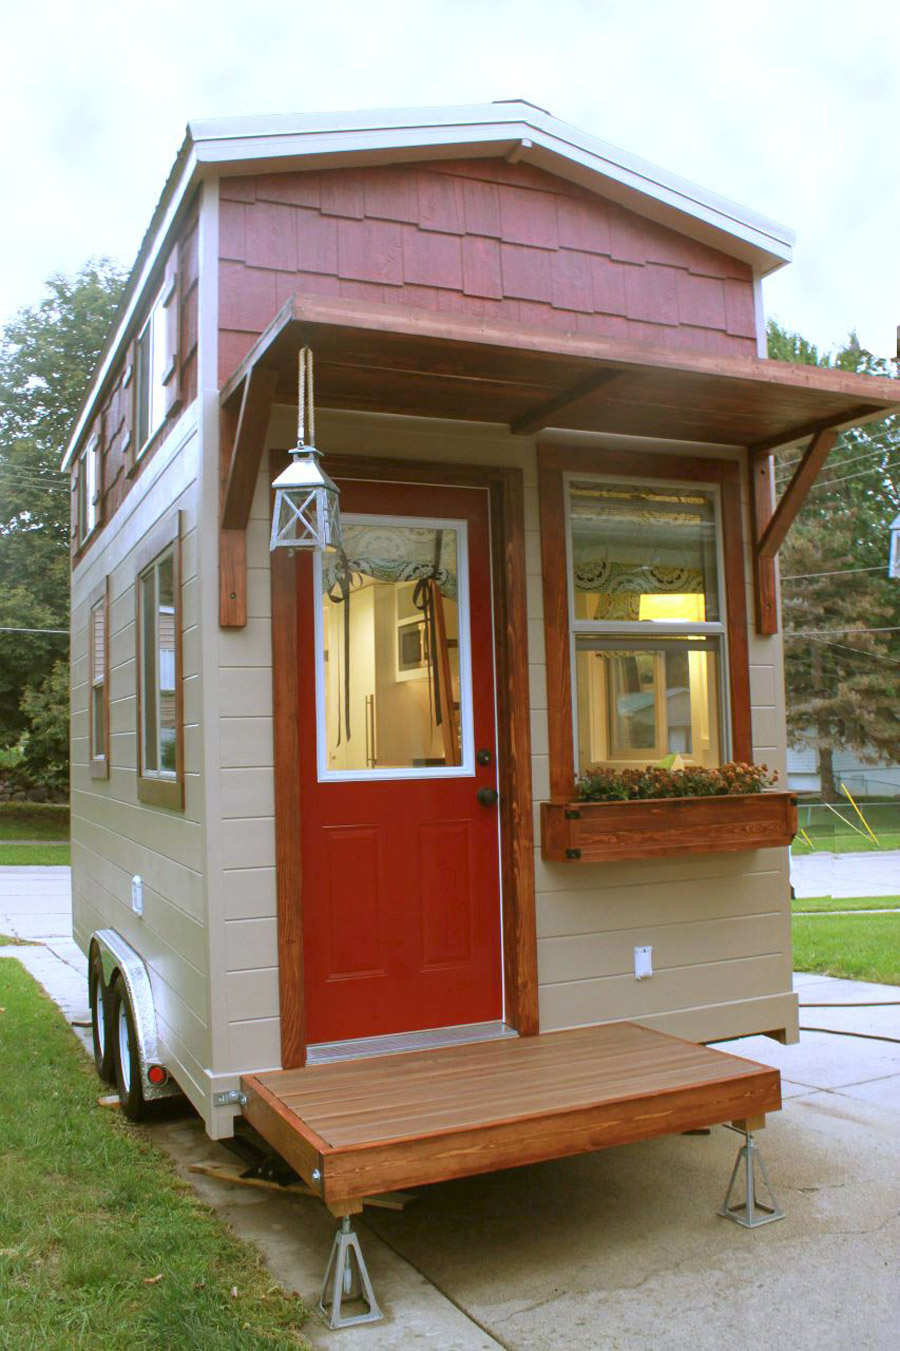 High plains tiny house tiny house swoon How to decorate small house